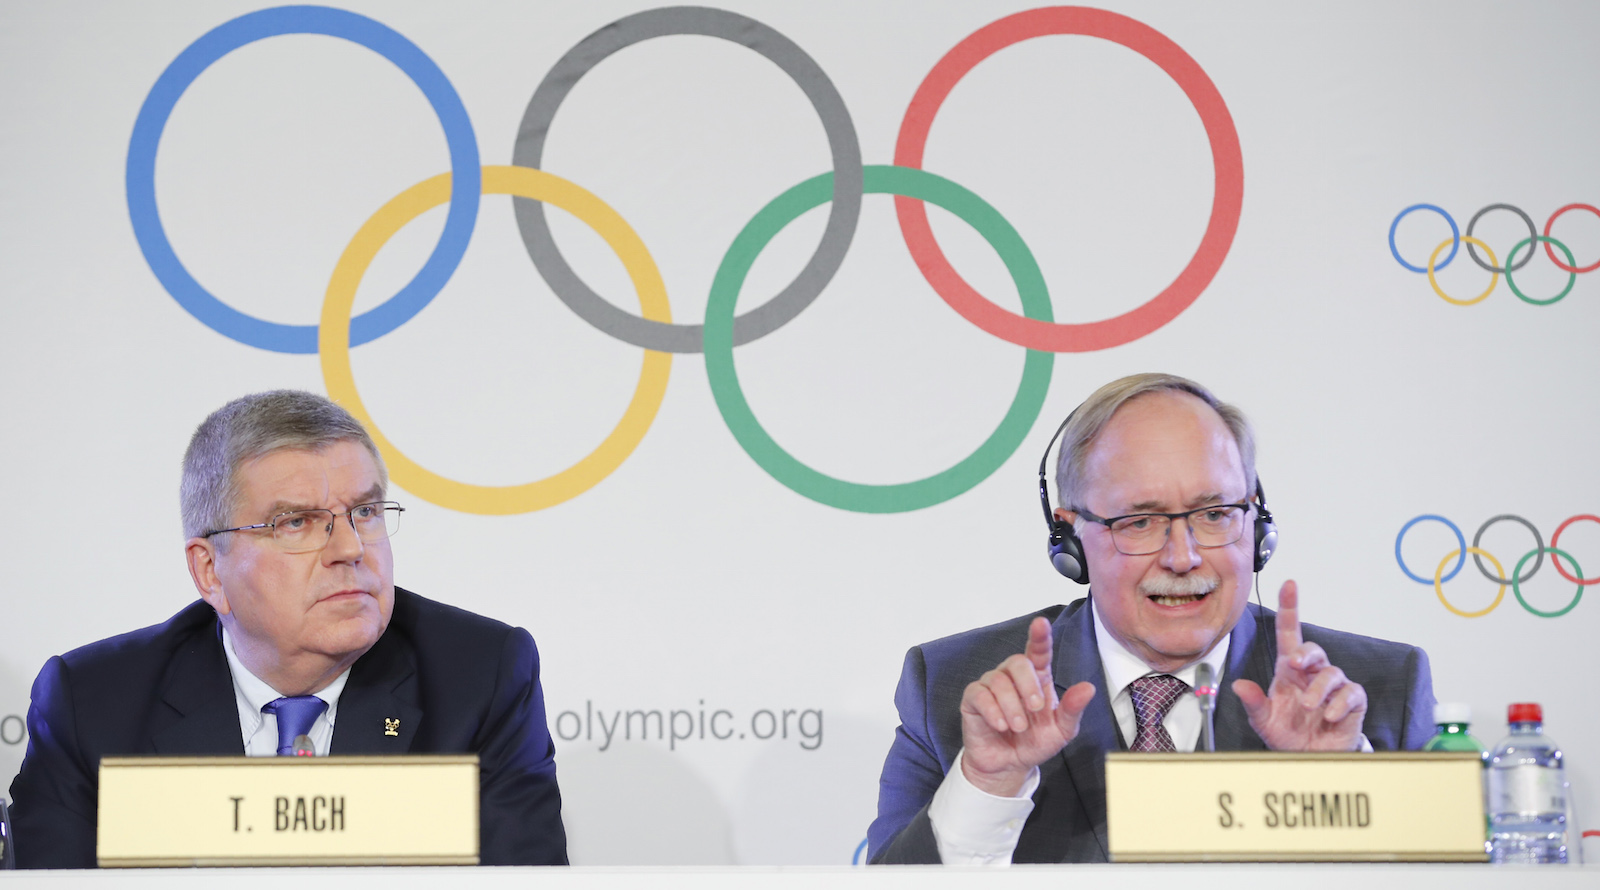 Samuel Schmid, Chair of the IOC Disciplinary Commission, and Thomas Bach, President of the International Olympic Committee, attend a news conference after an Executive Board meeting on sanctions for Russian athletes, in Lausanne, Switzerland, December 5, 2017.